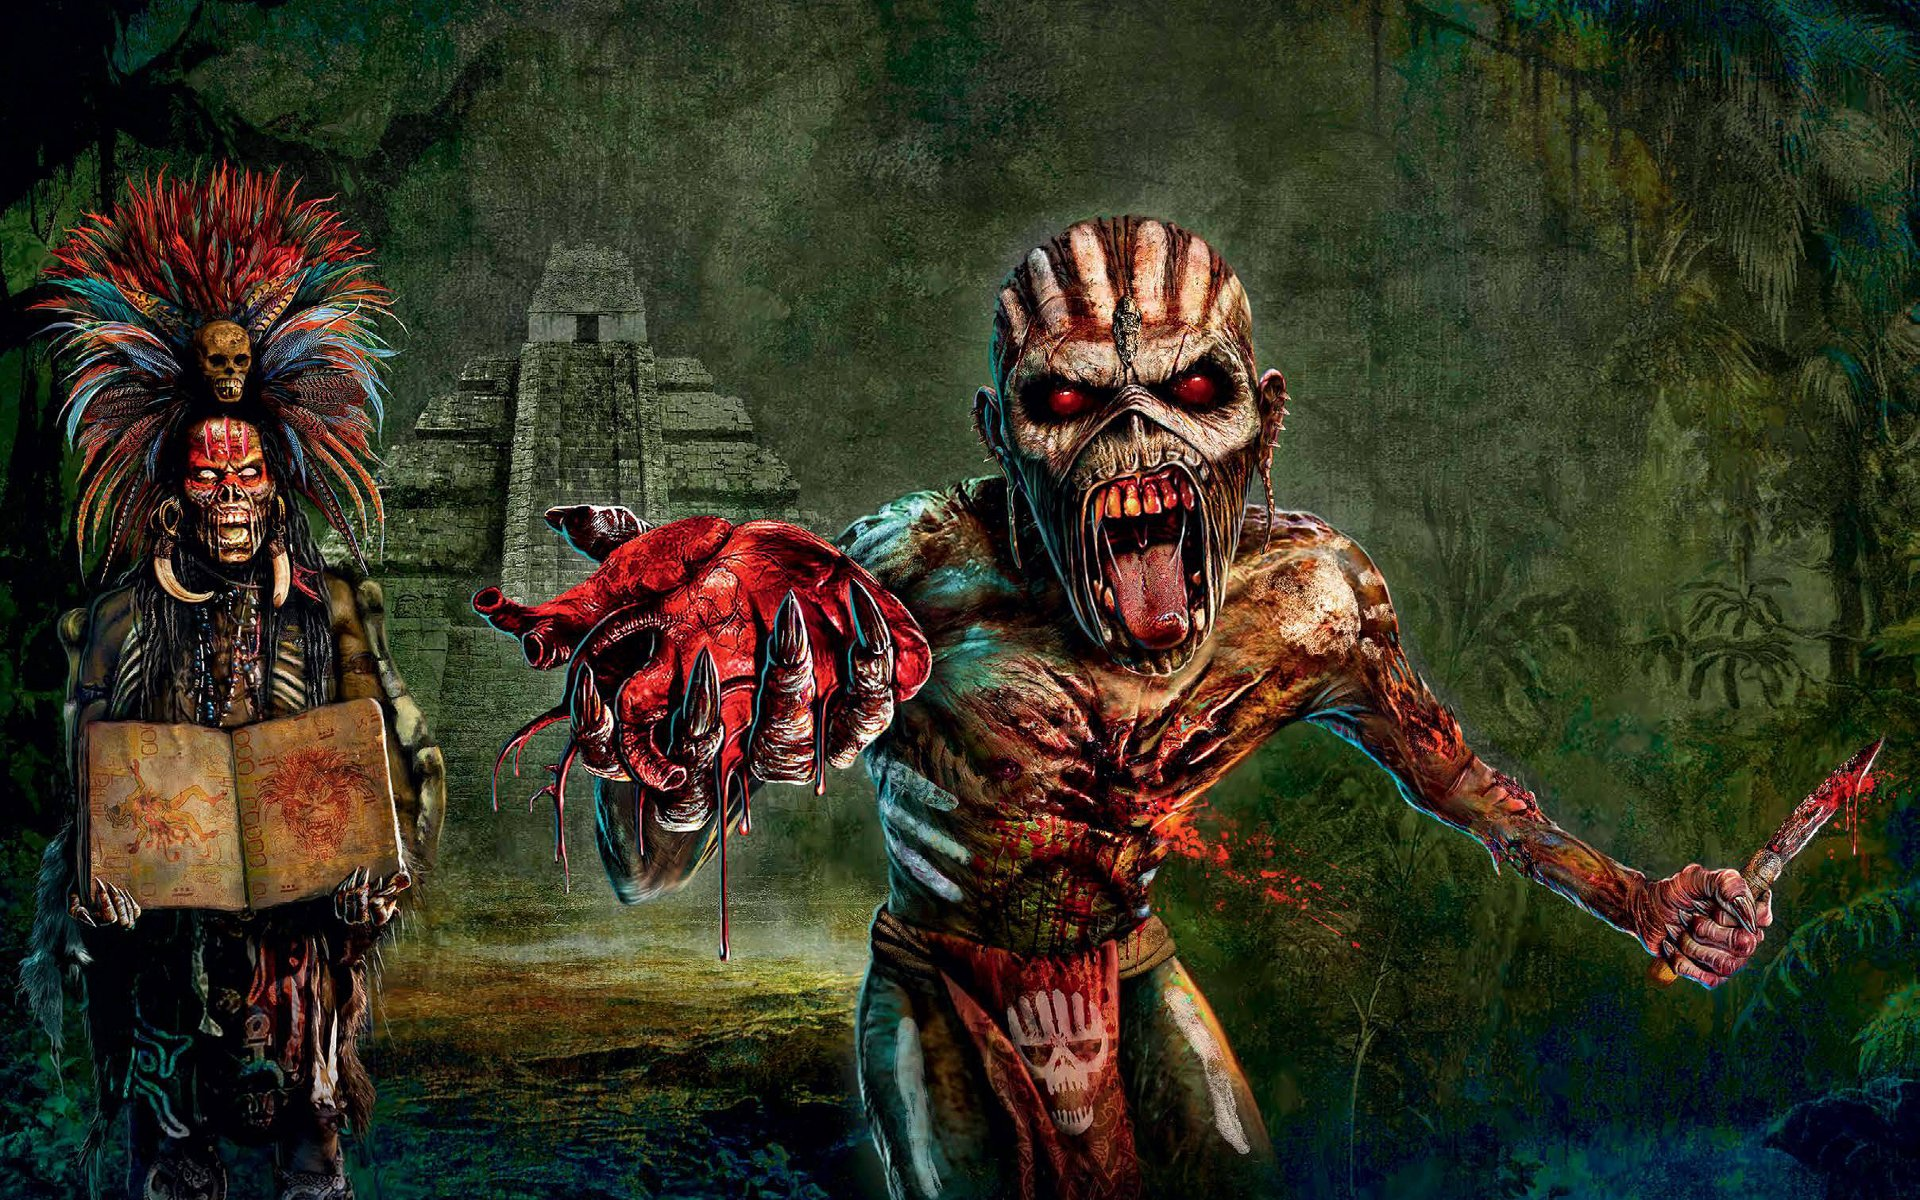 iron maiden full hd wallpaper and background image | 1920x1200 | id